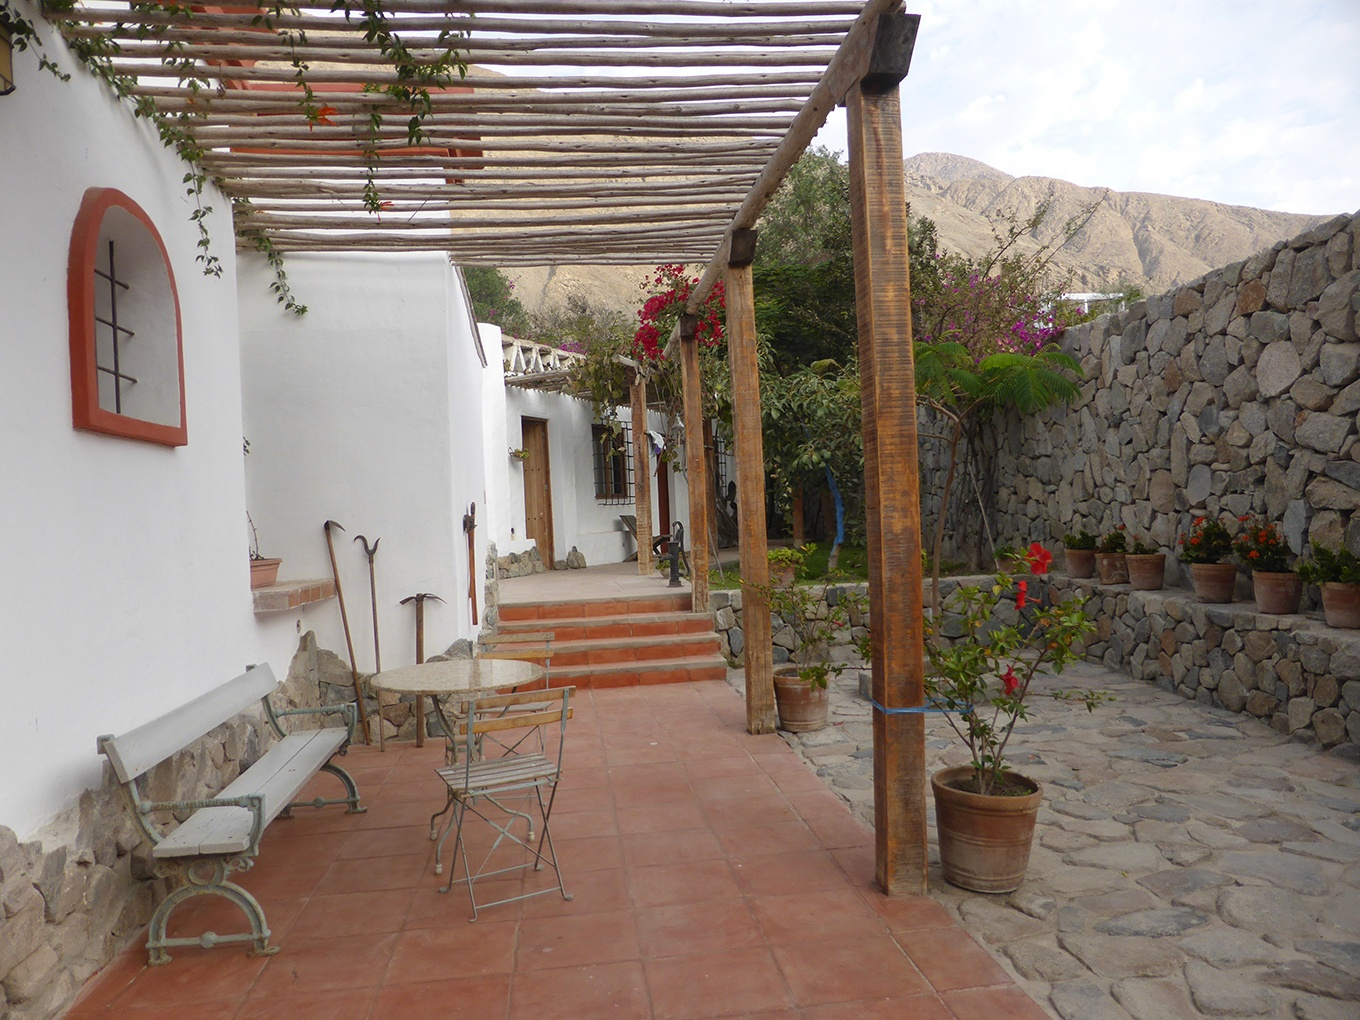 The architecture of the Spanish colonial period can be seen in this charming hillside cottage in Lunahuaná, Peru.